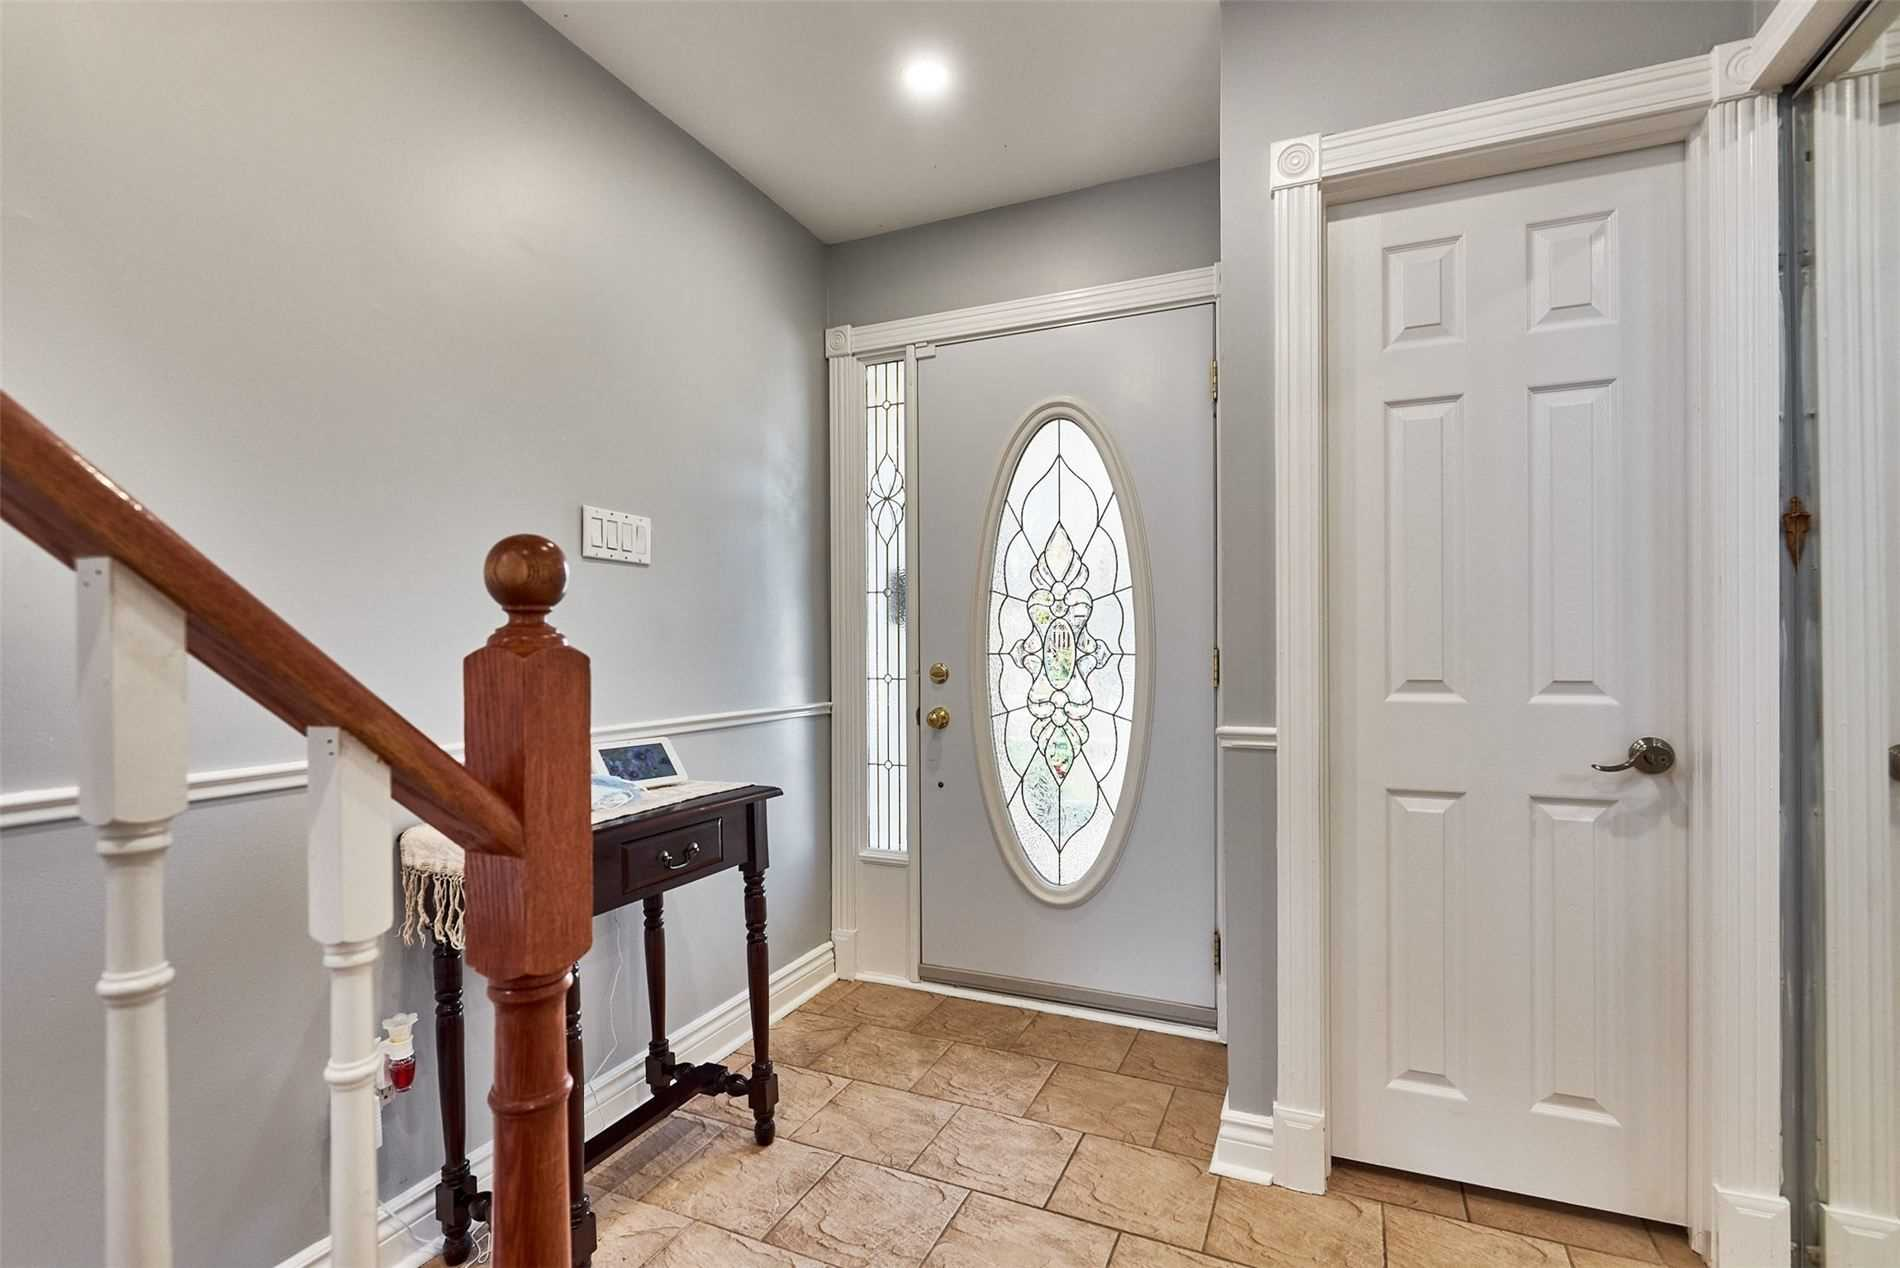 Image 12 of 33 showing inside of 3 Bedroom Condo Townhouse 2-Storey for Sale at 33 Clover Ridge Dr W Unit# 9, Ajax L1S3M5